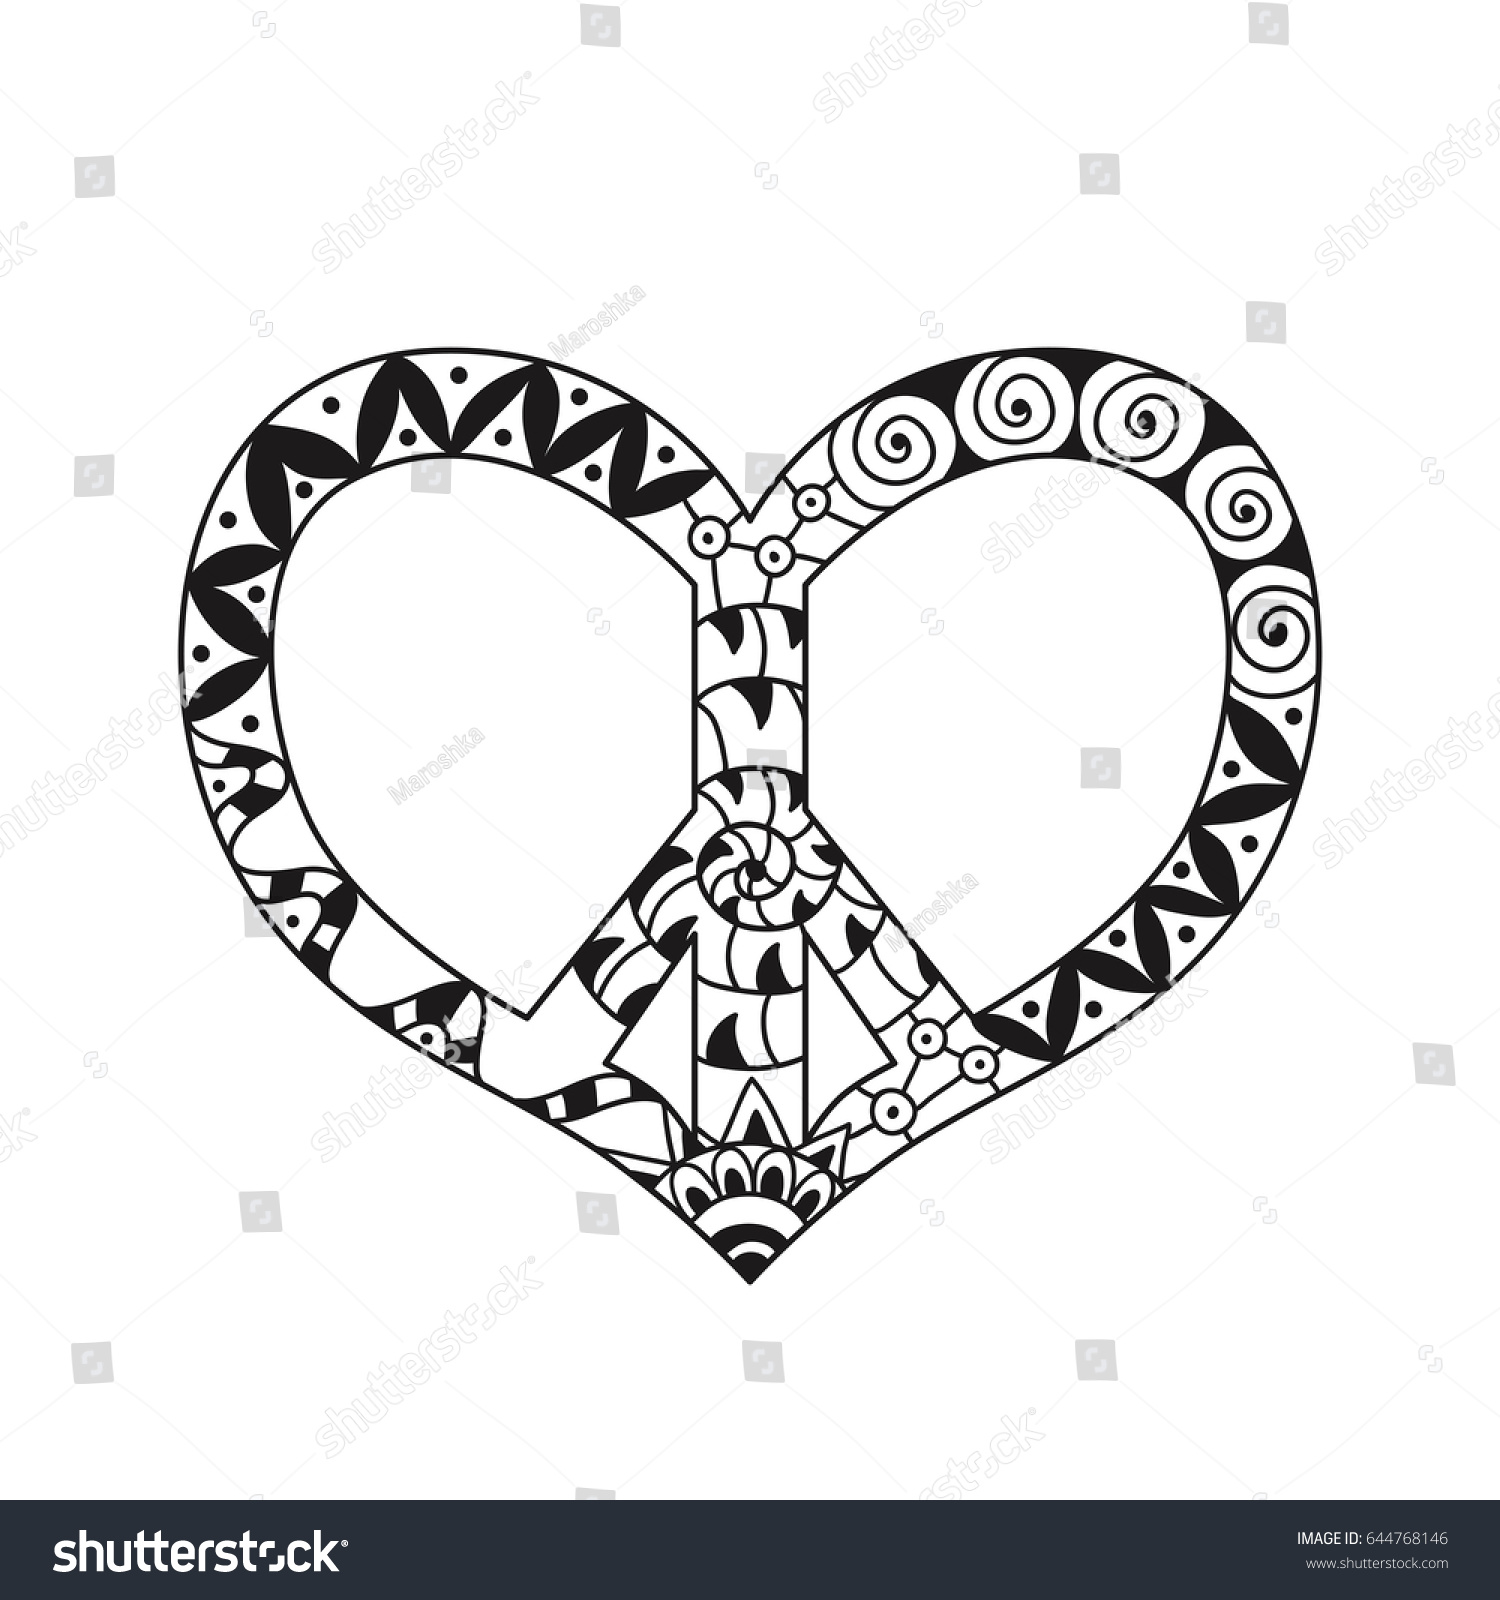 Hand Drawn Hippie Peace Symbol Heart Stock Vector (Royalty Free ...